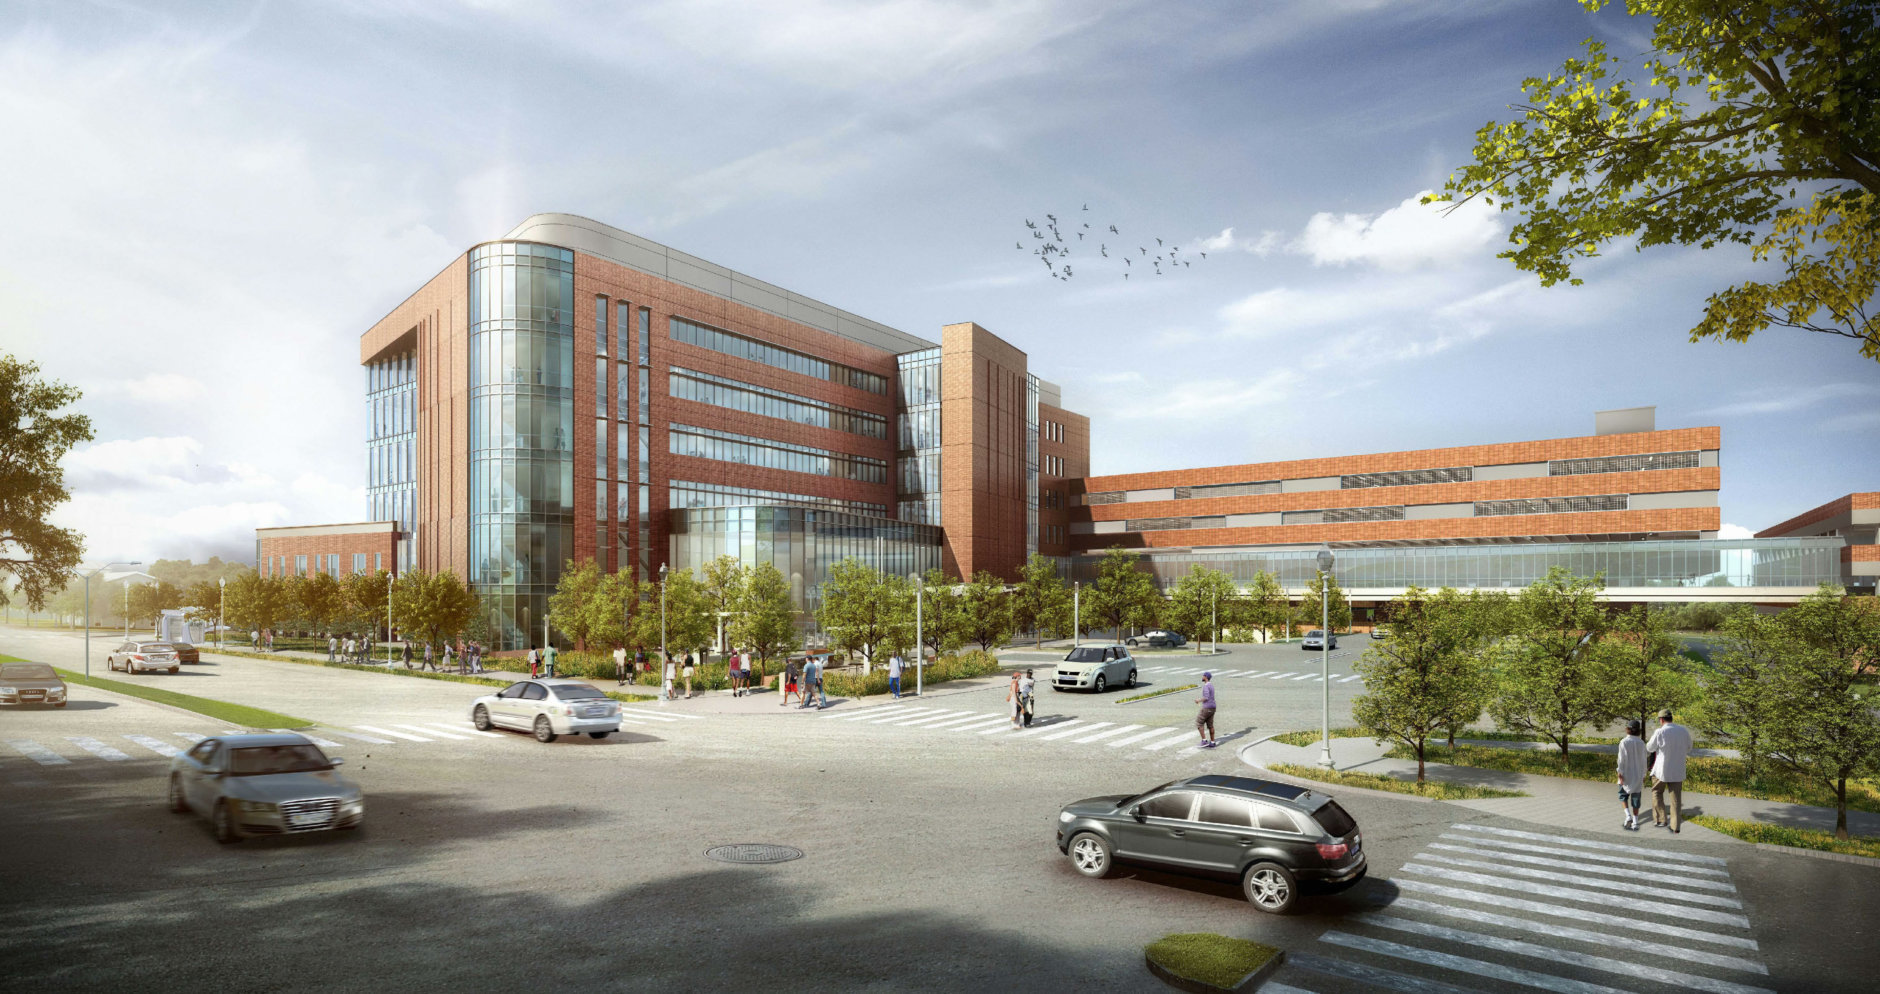 The view of the planned Virginia Hospital Center expansion. (Courtesy Virginia Hospital Center)